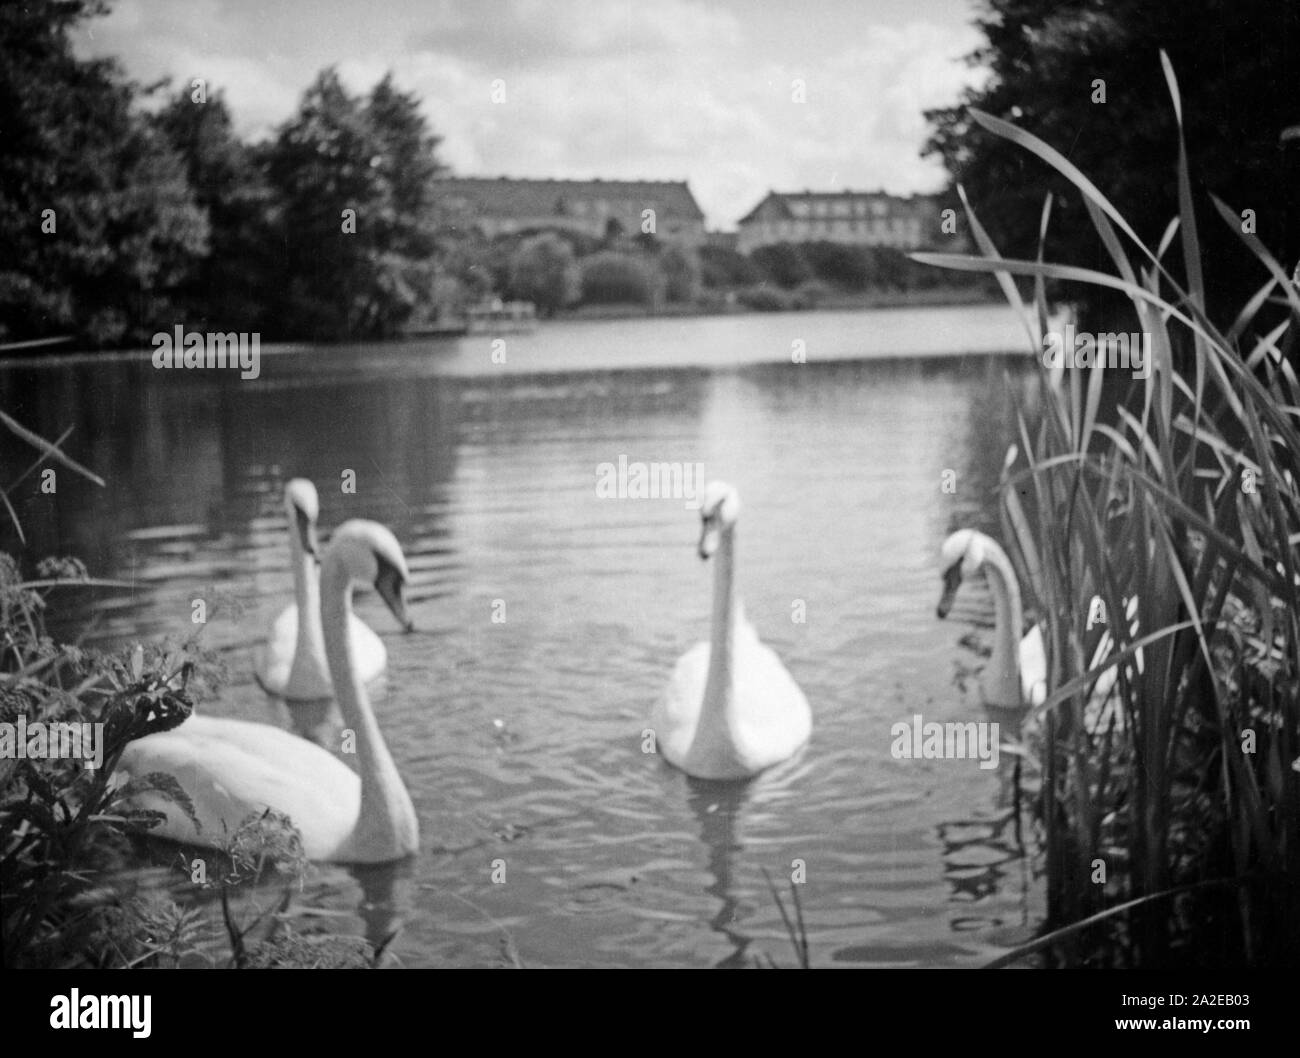 Schwäne auf dem Hammerteich im Stadtteil Rathshof, Königsberg, Ostpreußen 1930er Jahr. Swans on Hammerteich pond of Rathshof district at Koenigsberg, East Prussia, 1930s. Stock Photo